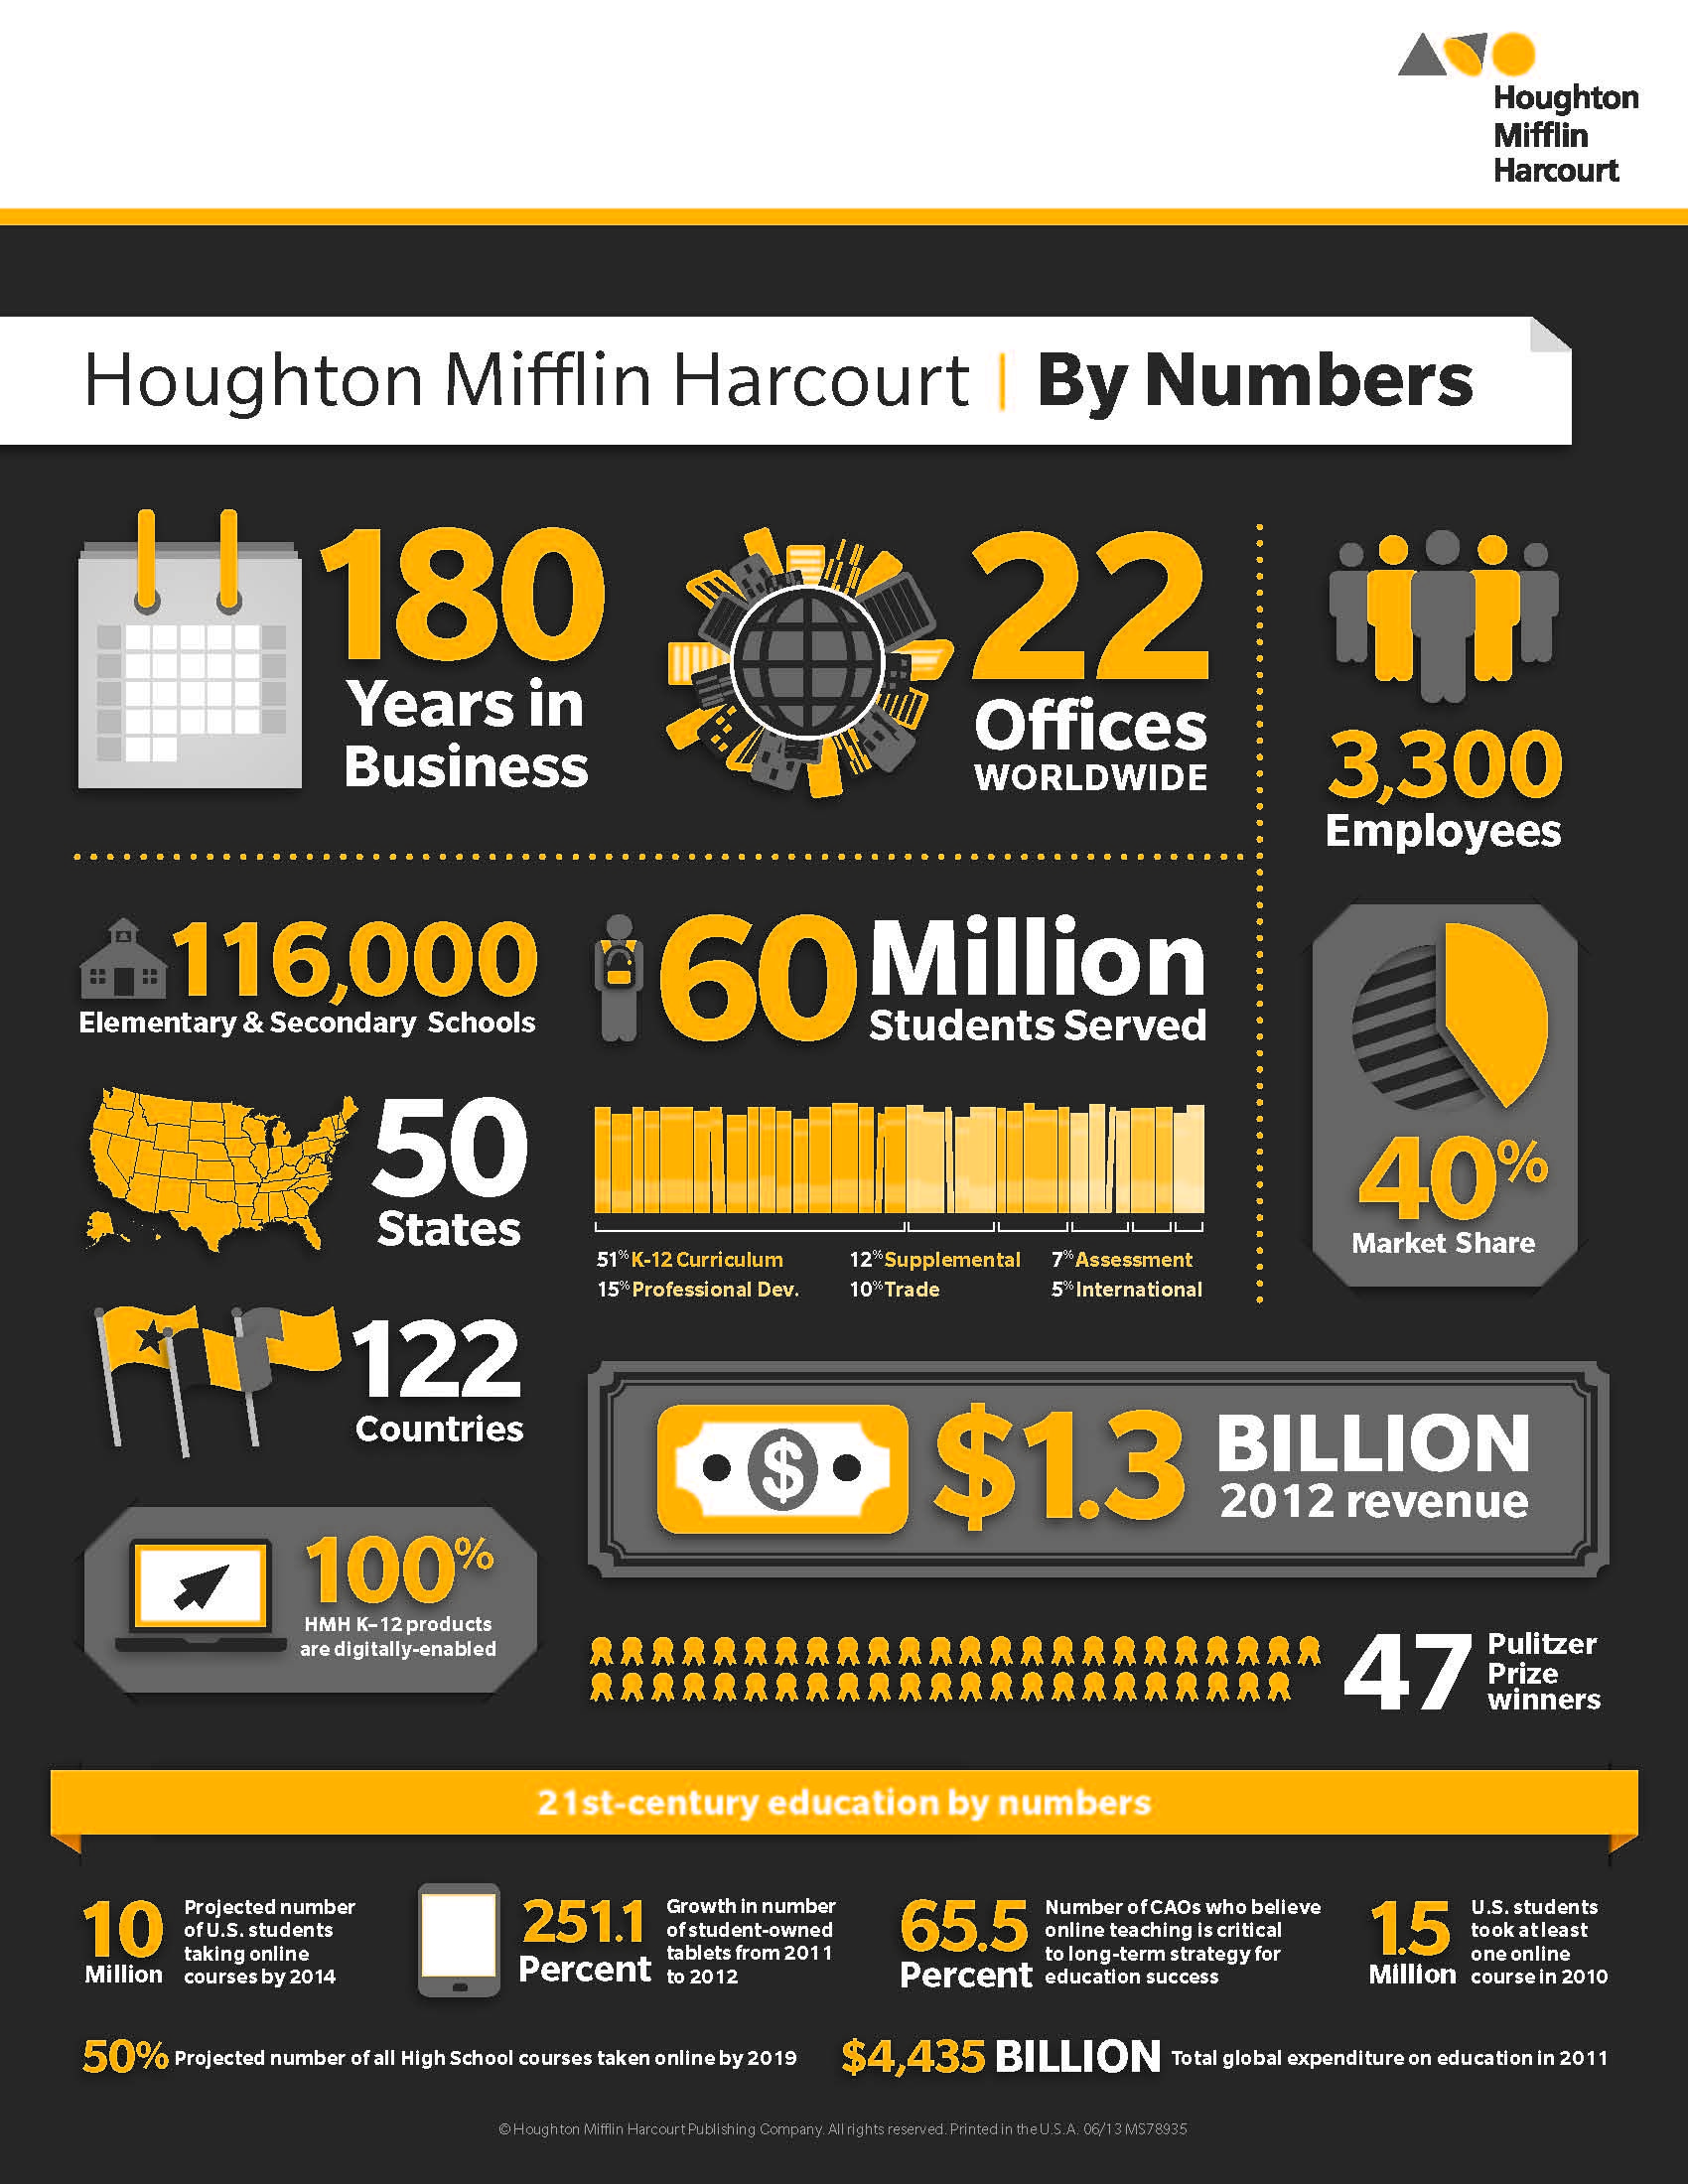 Houghton Mifflin Harcourt By The Numbers Did You Know